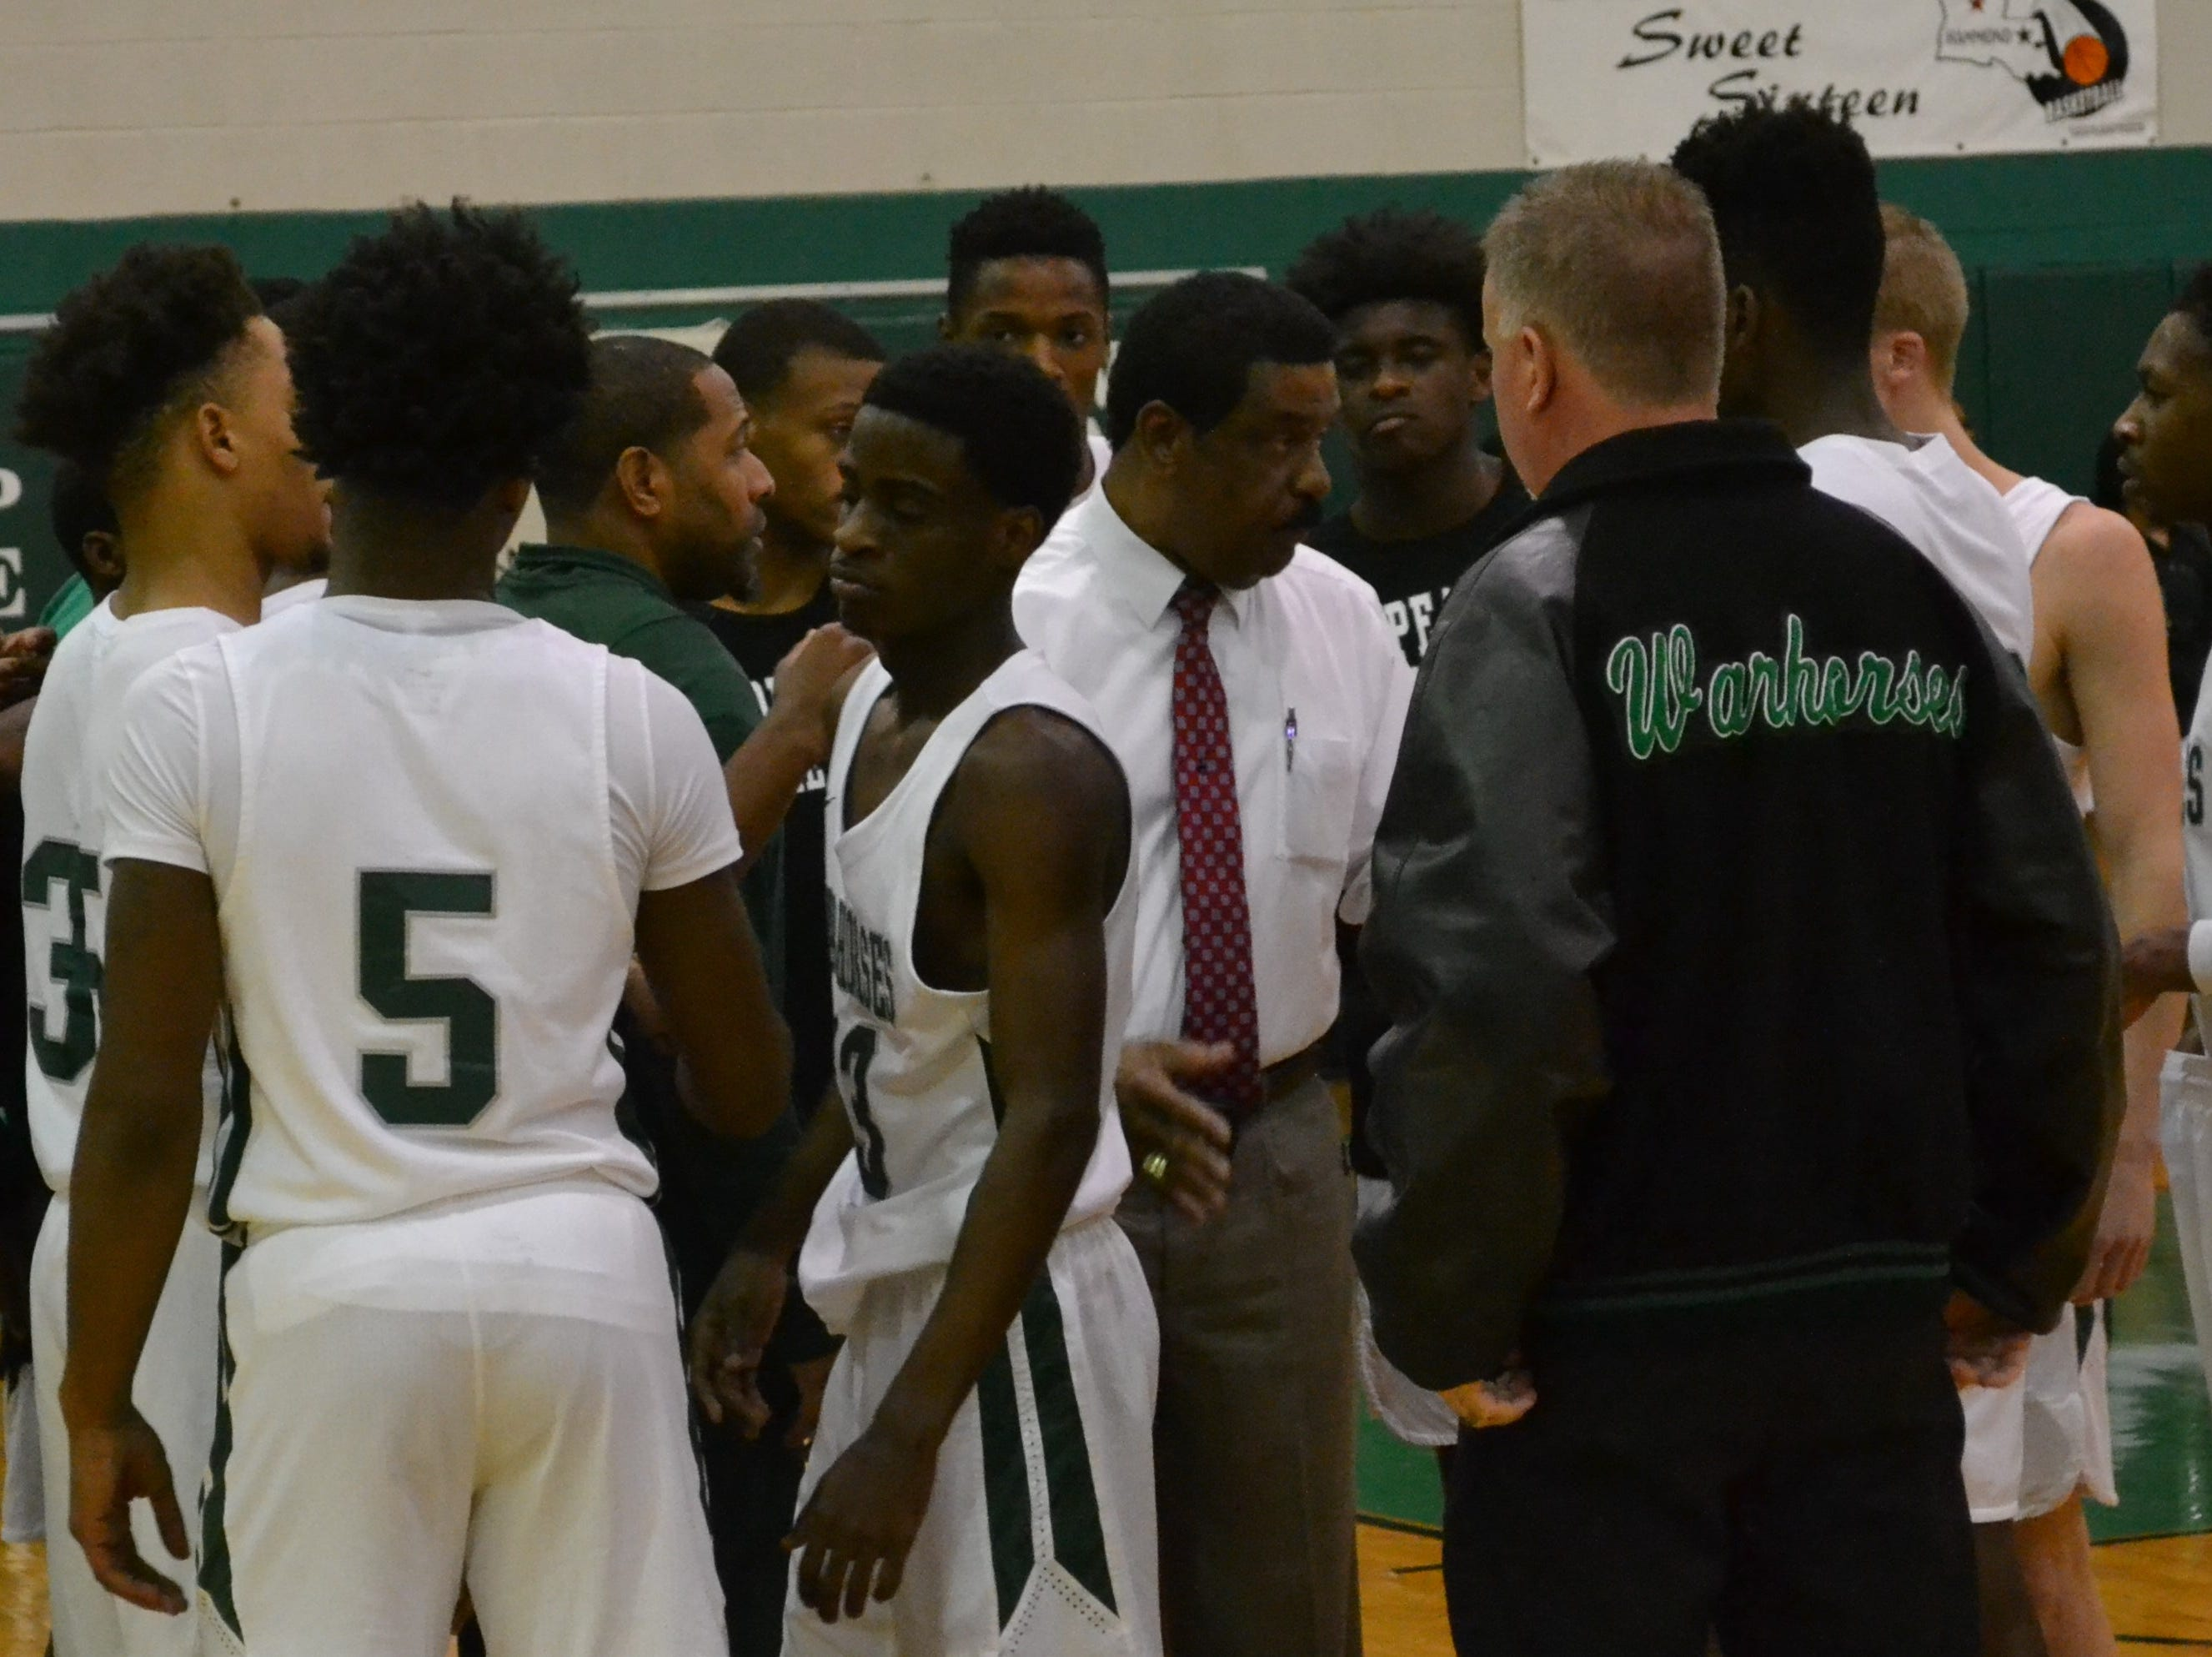 Peabody men's basketball head coach Charles Smith (center) talks with his team during a time out. The Peabody boys basketball team played the Bossier Bearkats Tuesday night at the Emerald Palace. Peabody got the win 72-67.